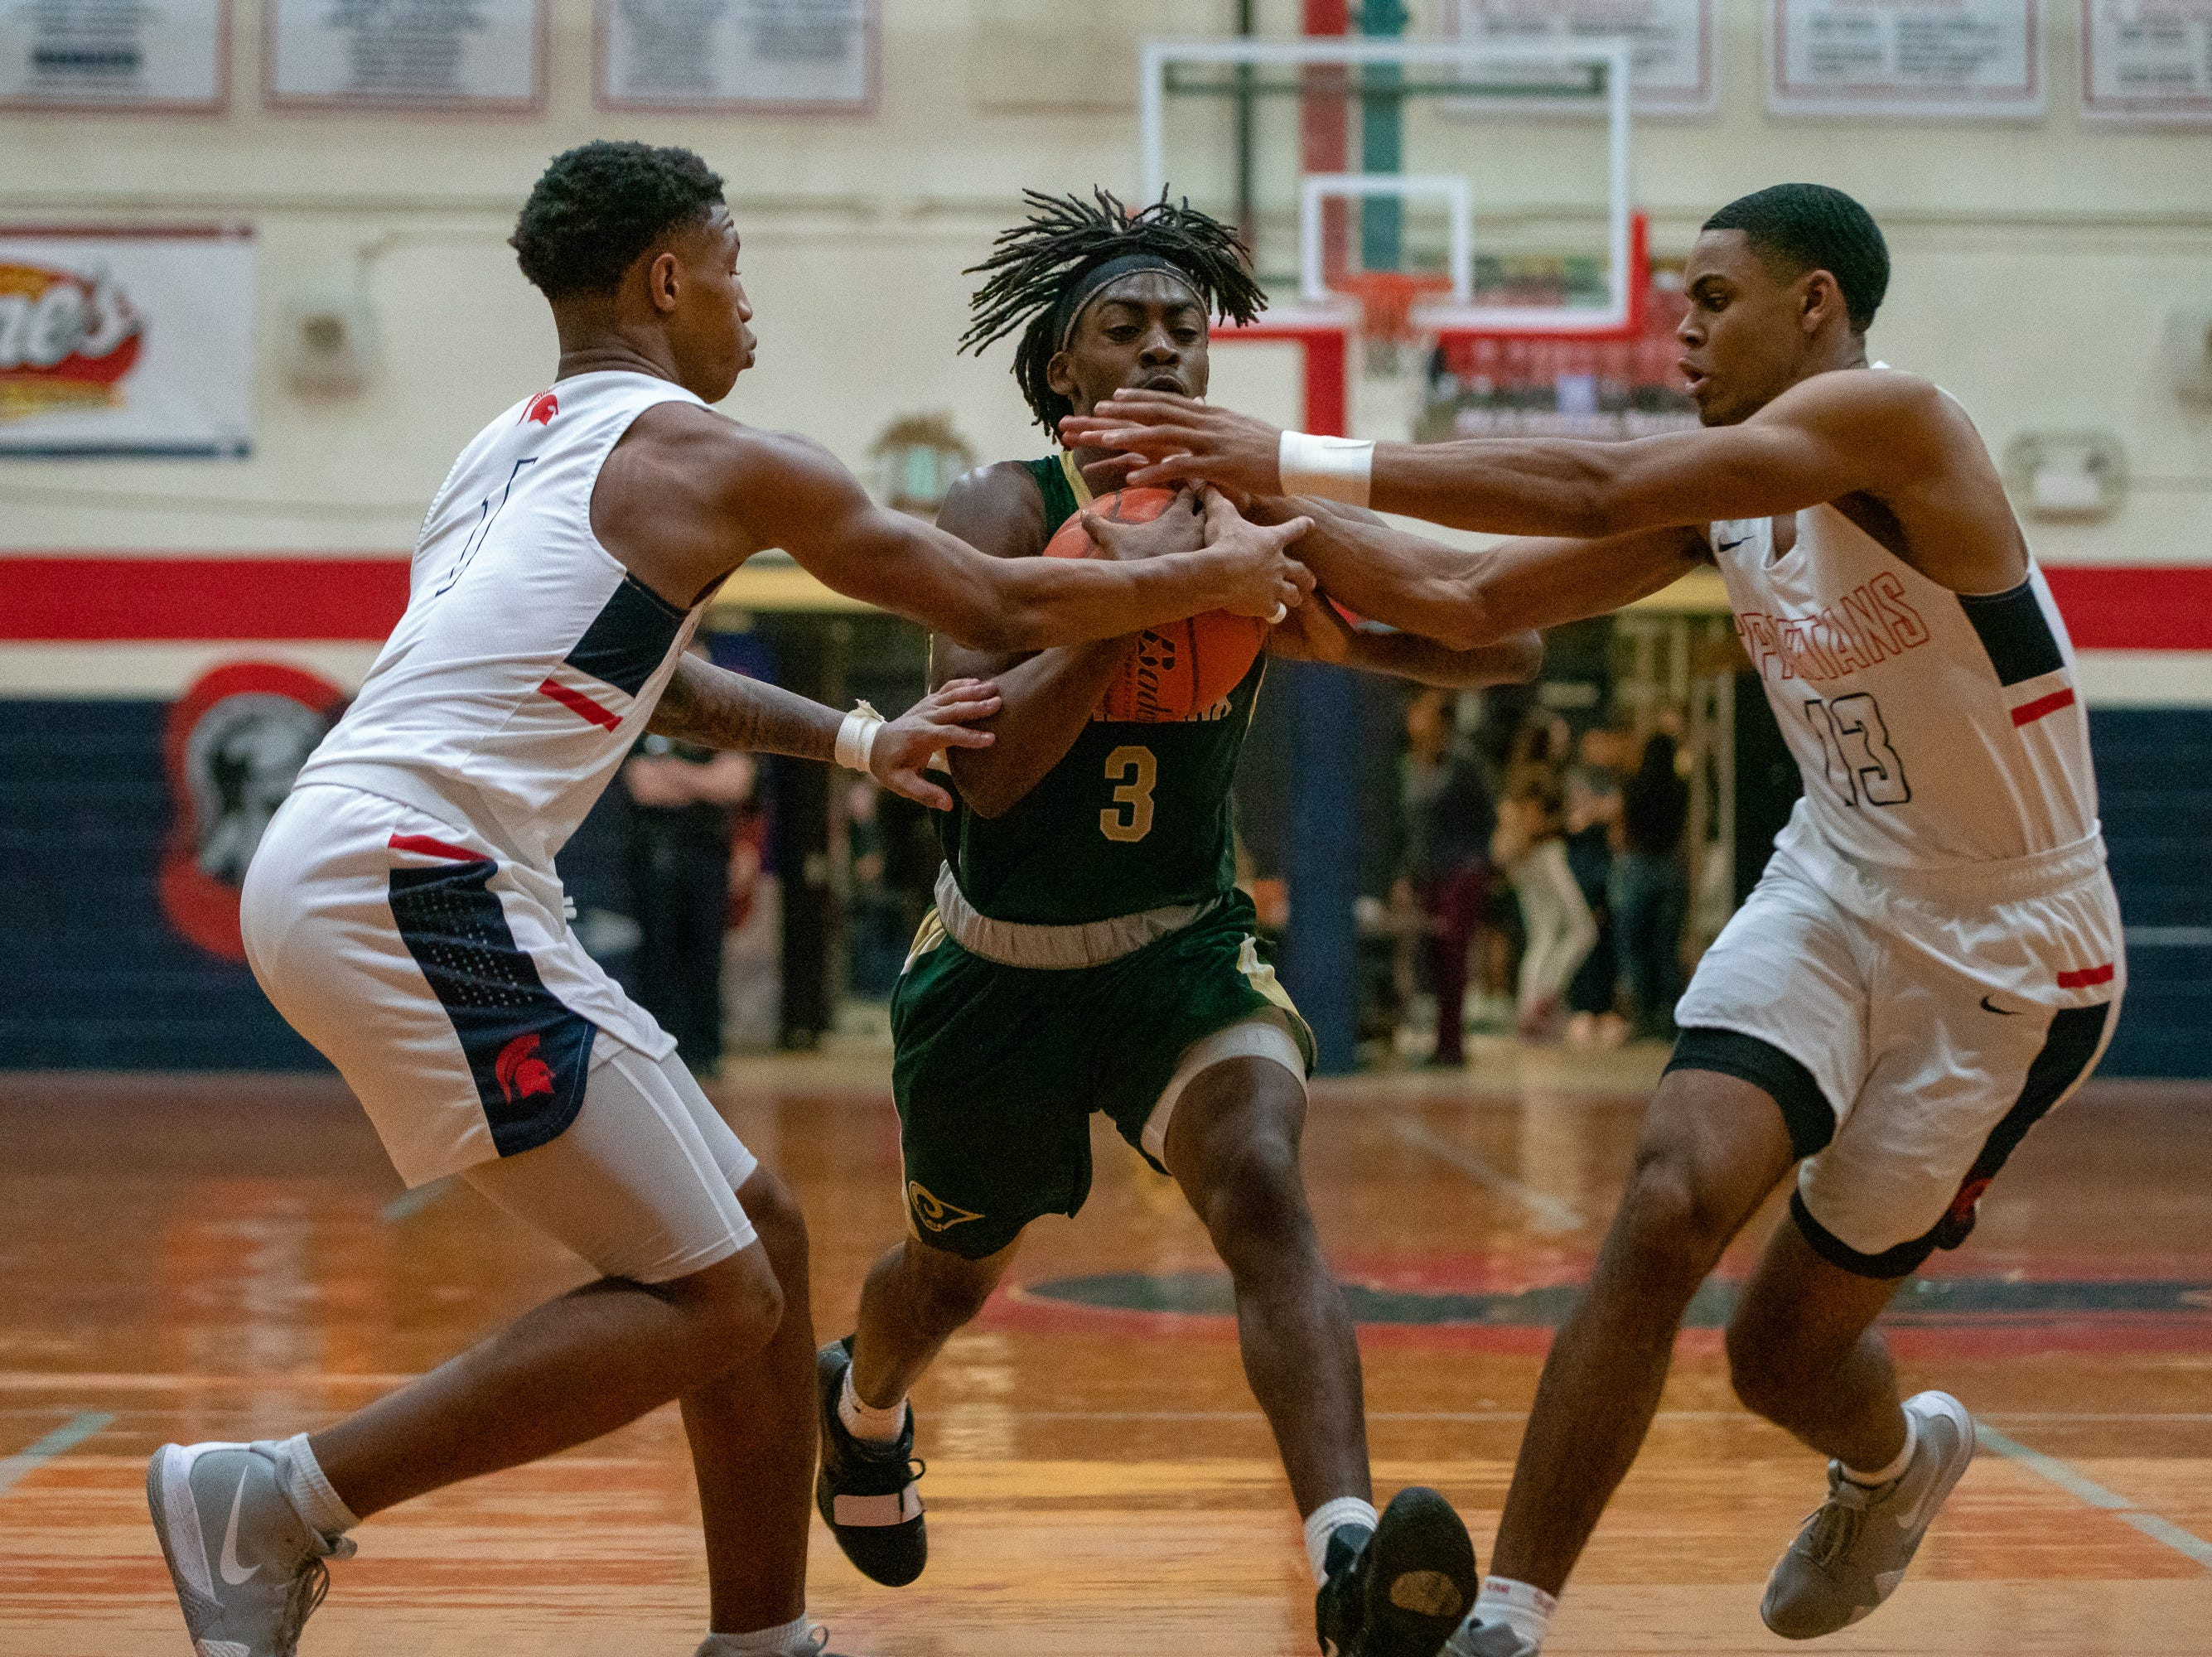 Acadiana High's Justin Dickerson (3) gets stopped by the defense while going to the goal as the Comeaux High Spartans take on the Acadiana High Wreckin' Rams at Comeaux high school on Jan. 25, 2019.